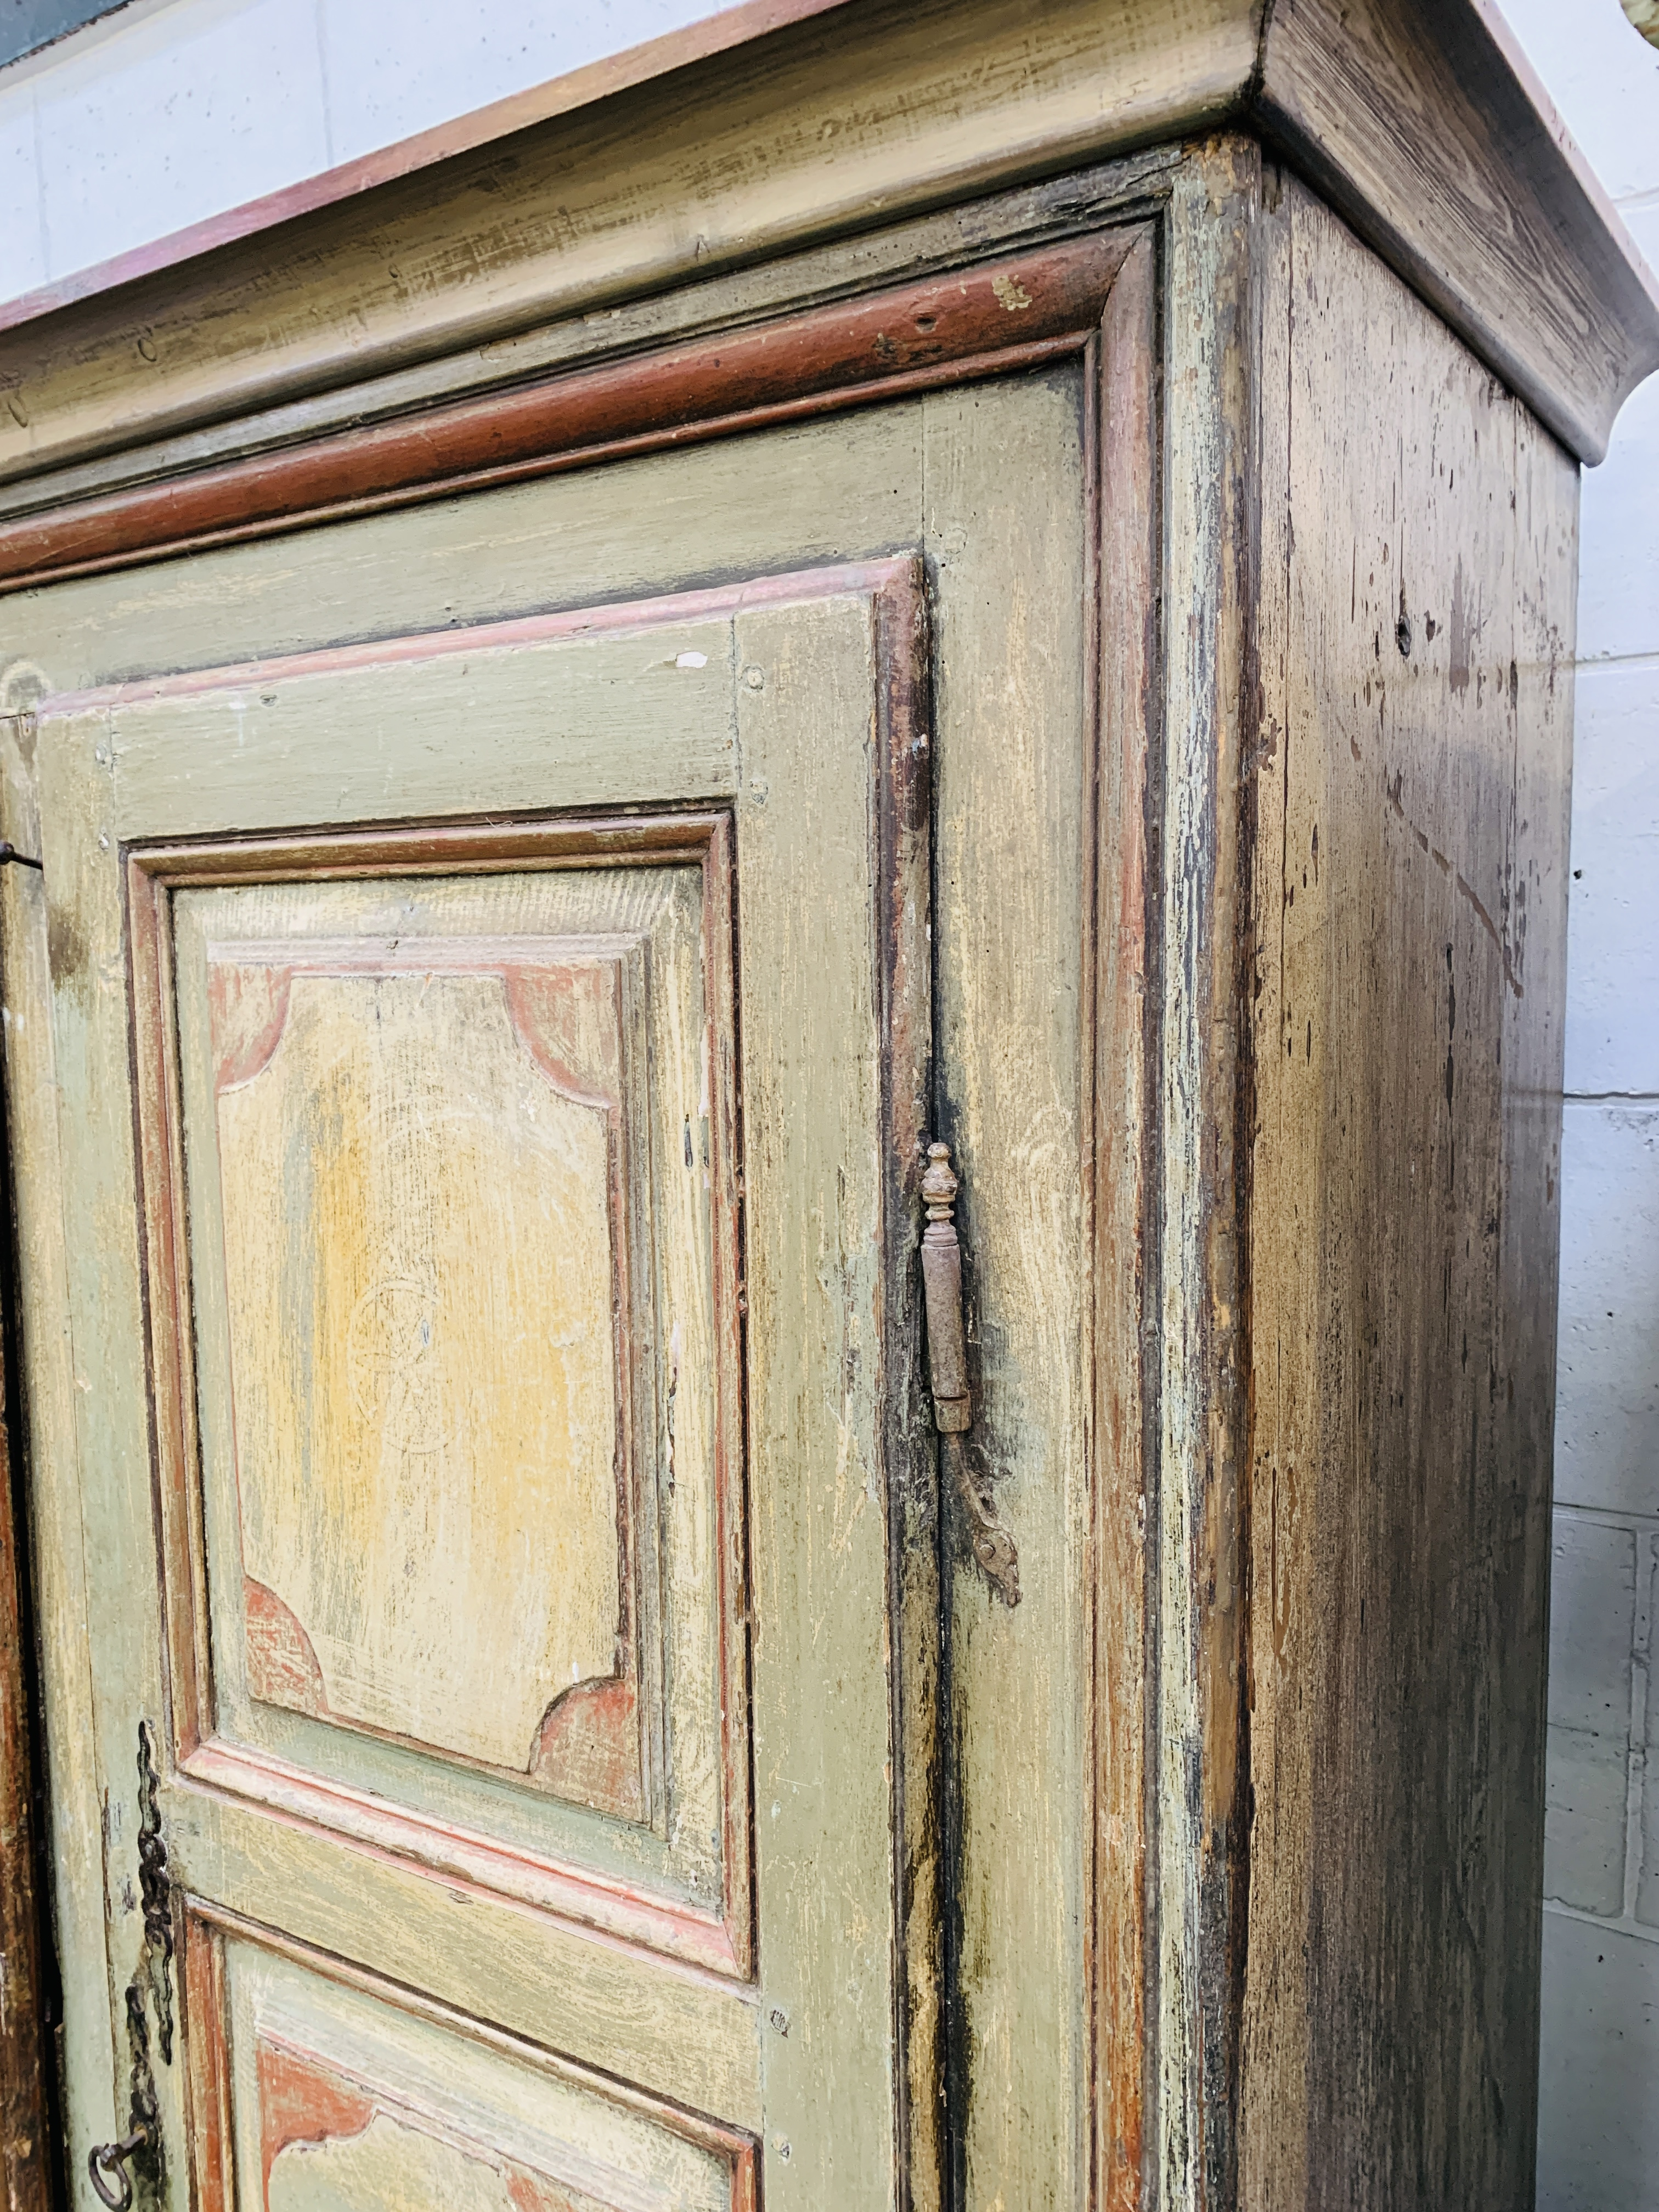 Mid-19th century French painted pine wardrobe - Image 6 of 8